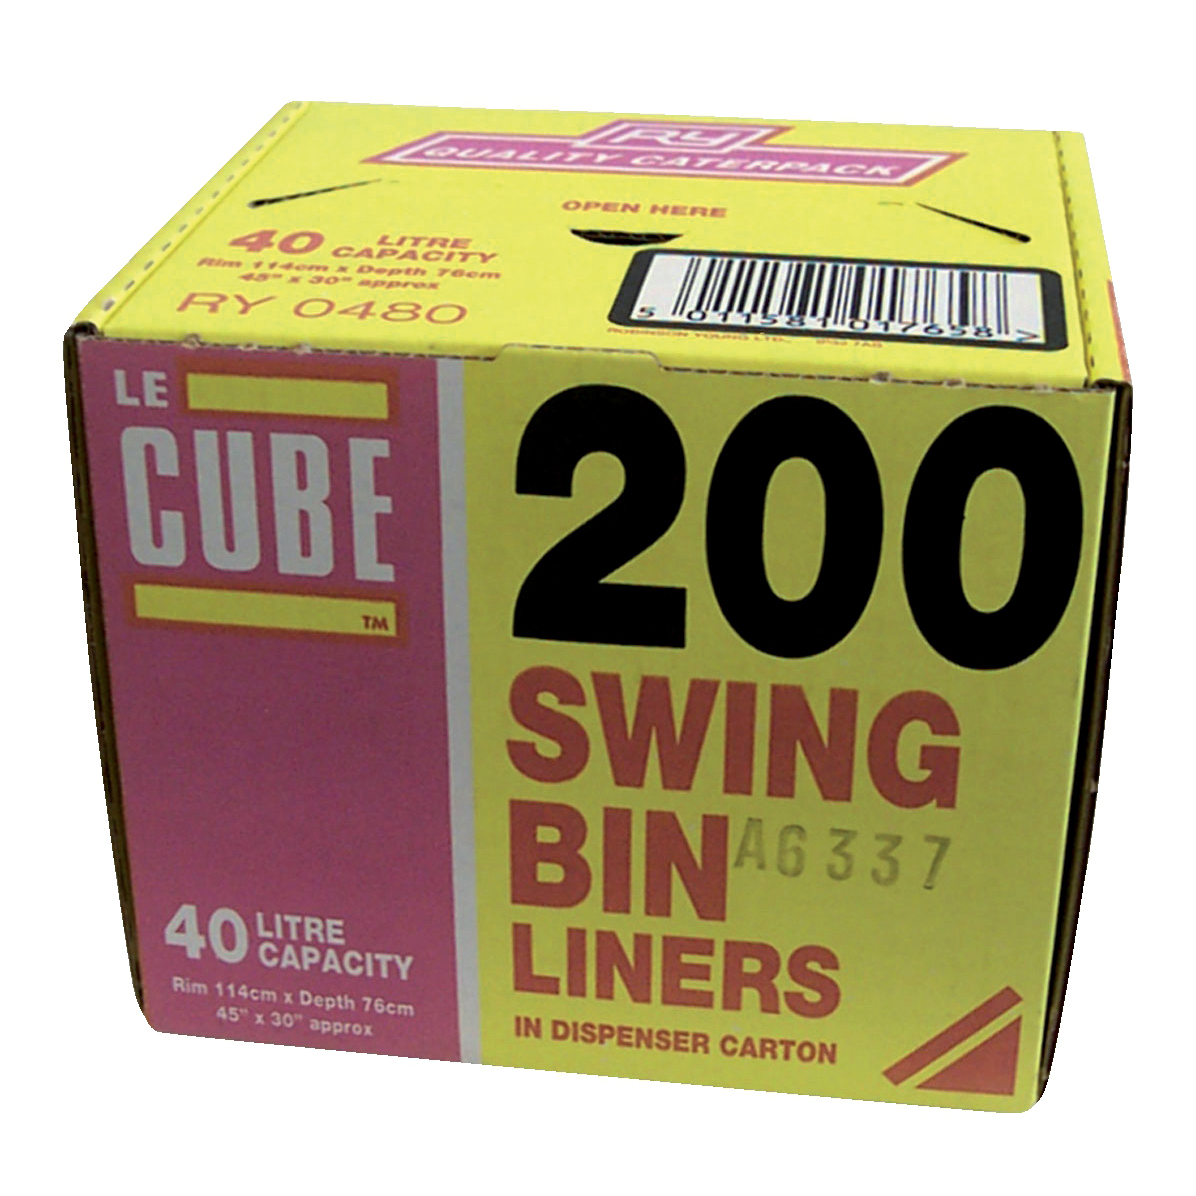 Le Cube Swing Bin Liners in Dispenser Box 46 Litre Capacity 1140x570mm Black Ref 480 Pack 200